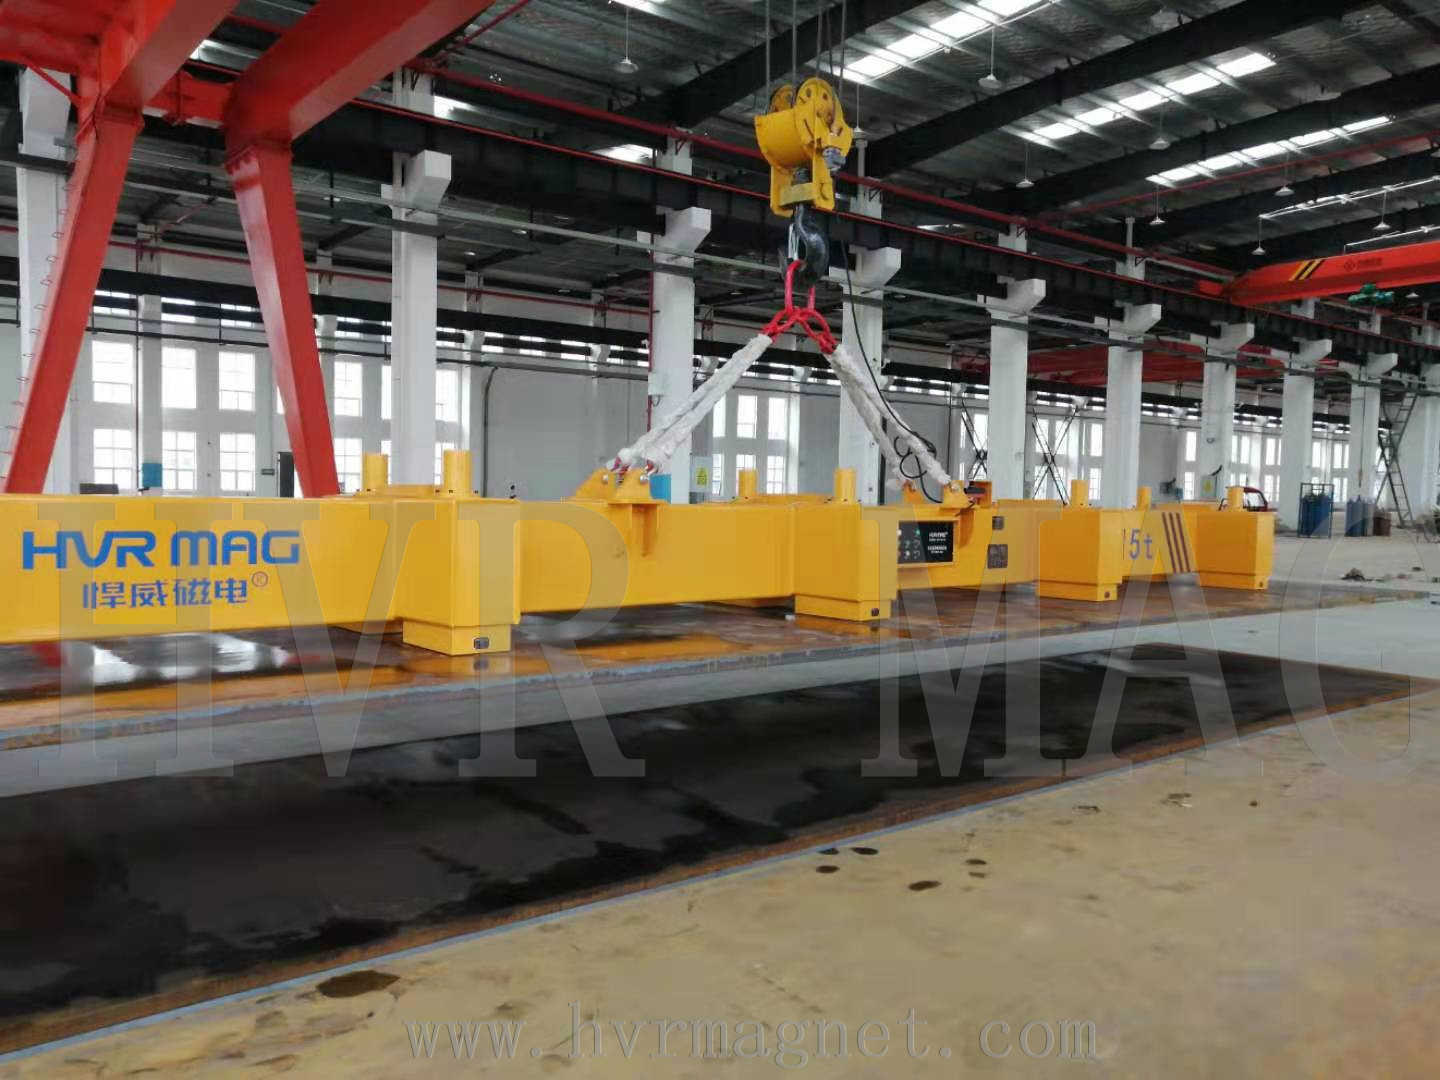 Magnetic lifting of thick steel plate with hoisting crane - HVR MAG